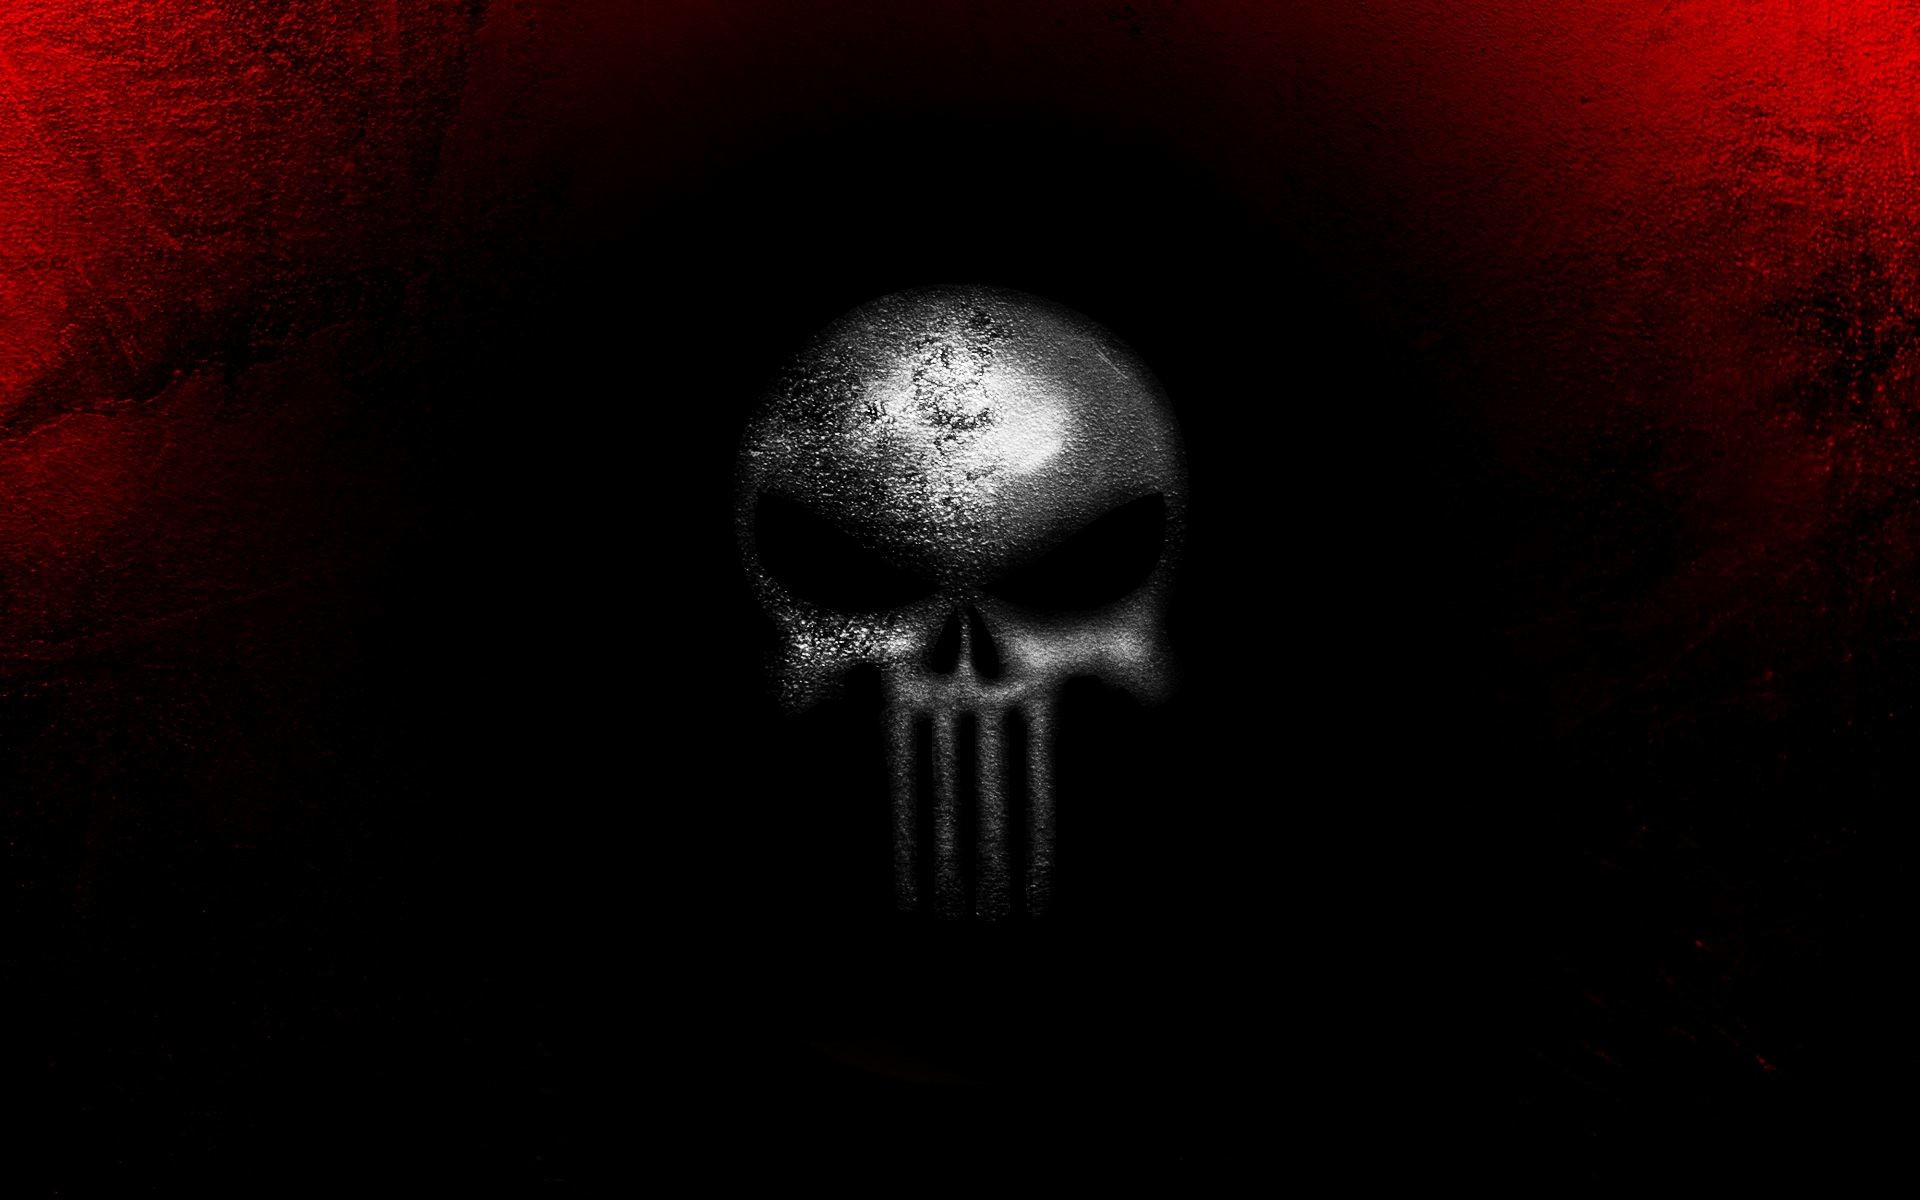 The Punisher Wallpapers Wallpaper | HD Wallpapers | Pinterest | Punisher  and Wallpaper